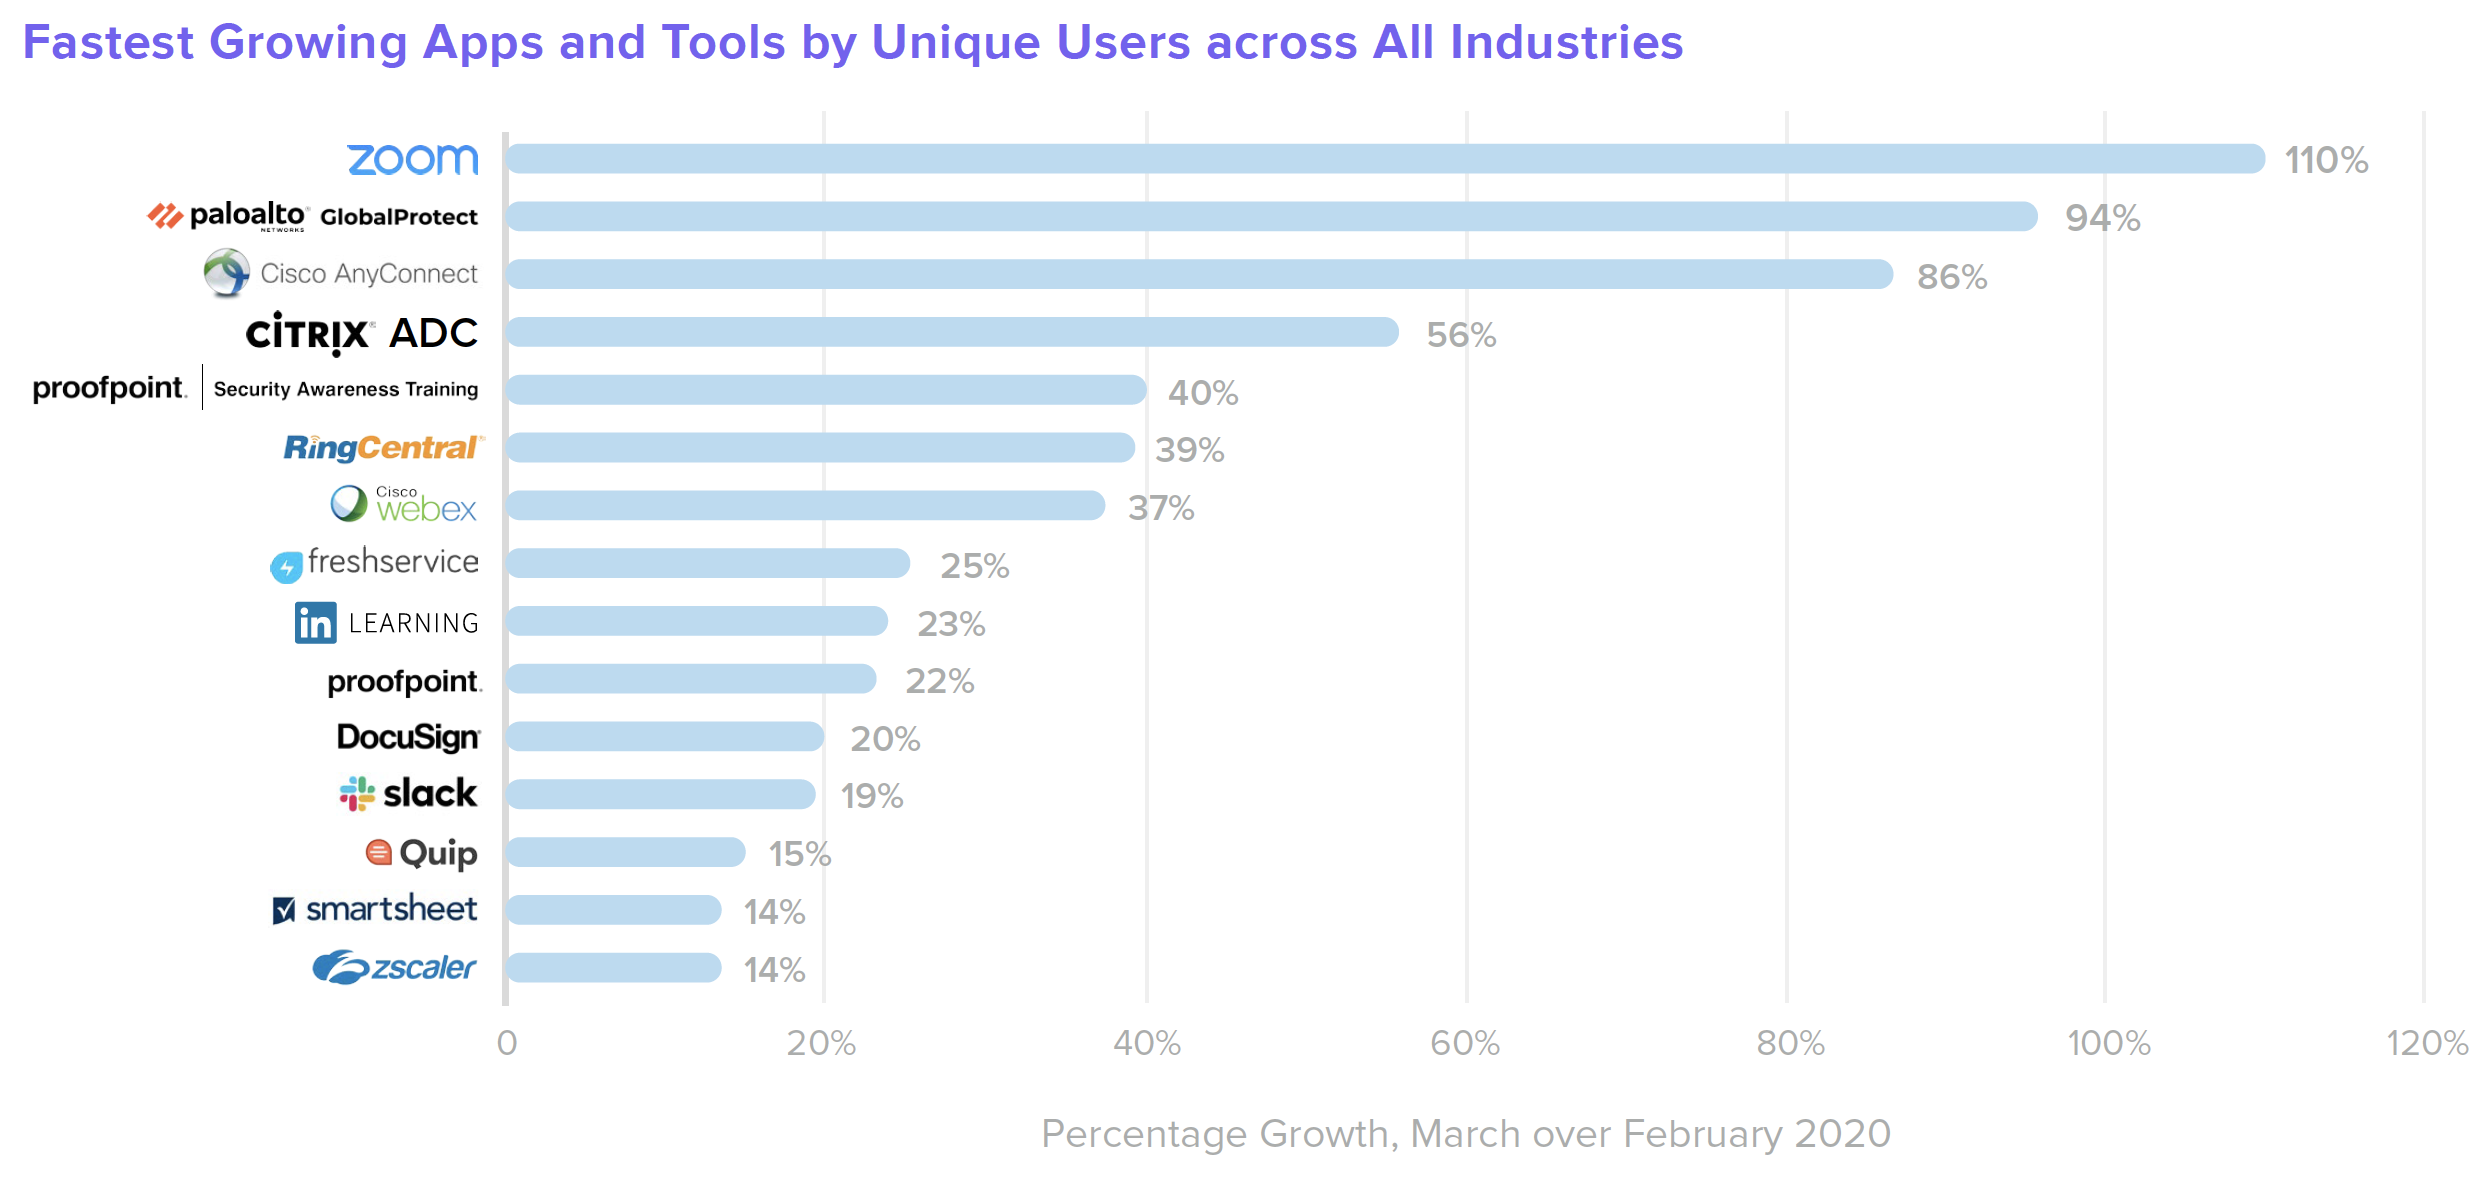 B W Healthcare Fastest Growing Apps and Tools by Unique Users across All Industries